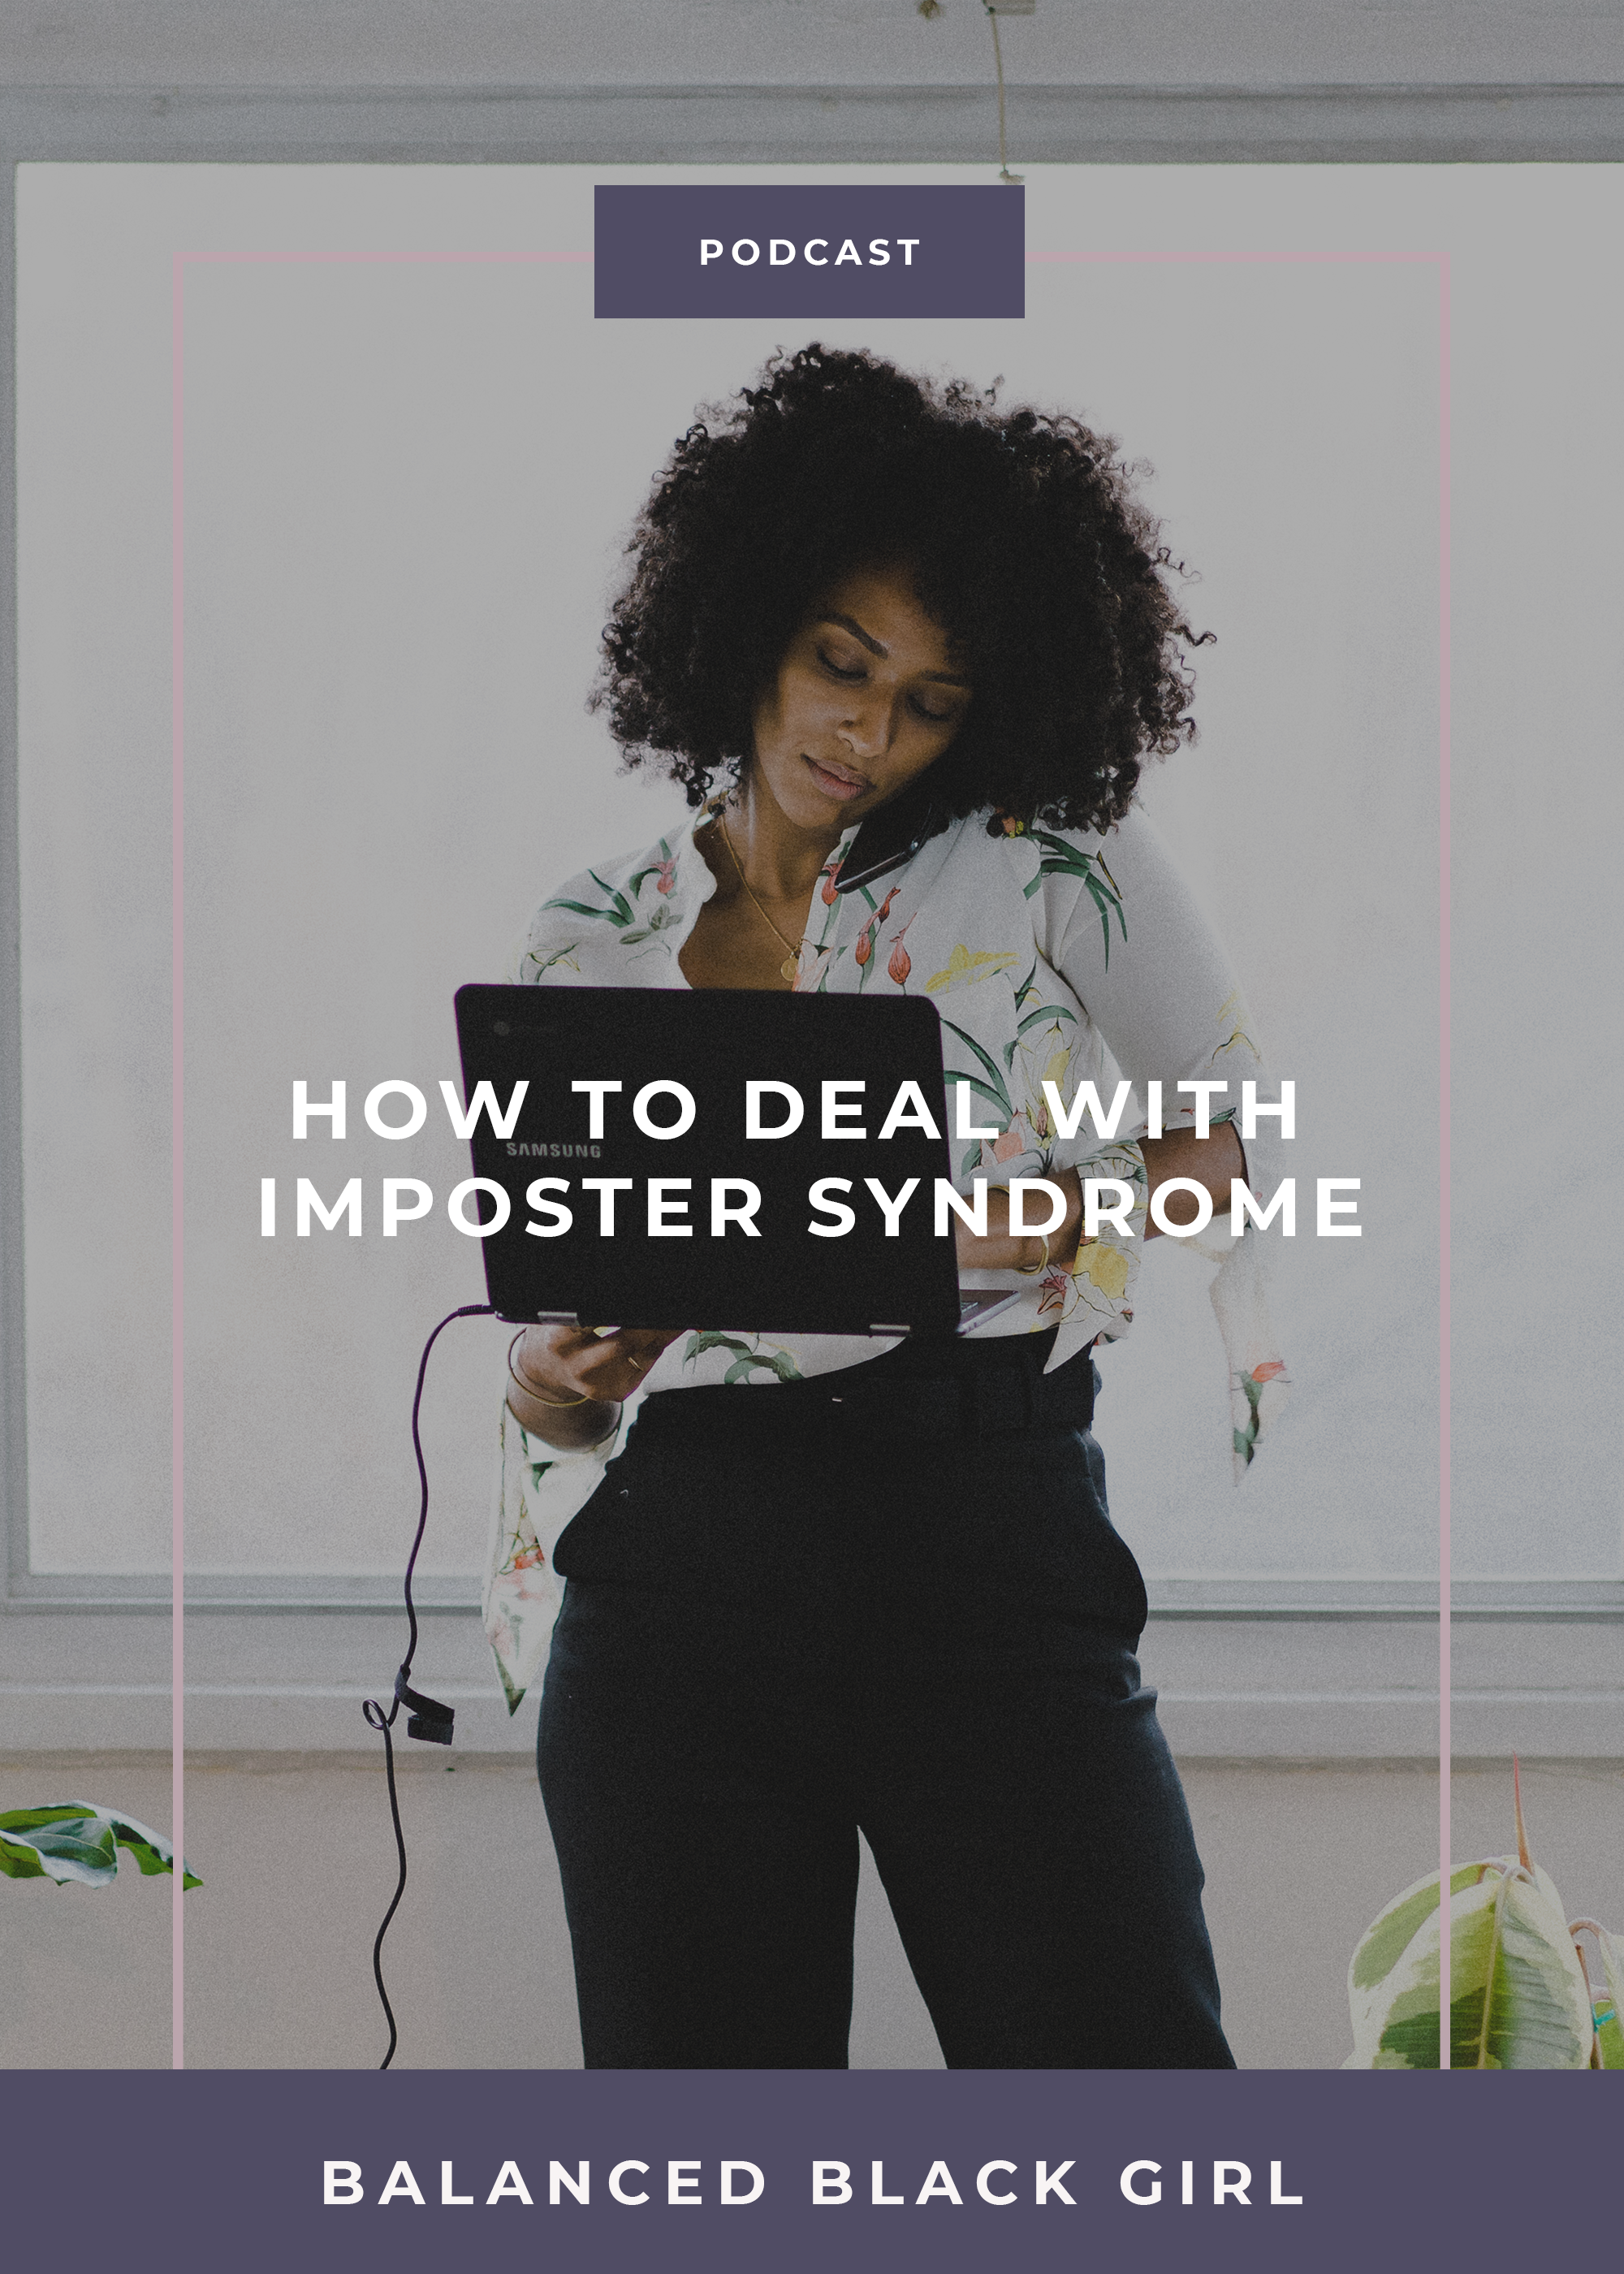 Struggling with feelings of imposter syndrome and perfectionism? Tune into this Feel Good Friday episode of the Balanced Black Girl Podcast for tips to help you deal with imposter syndrome.